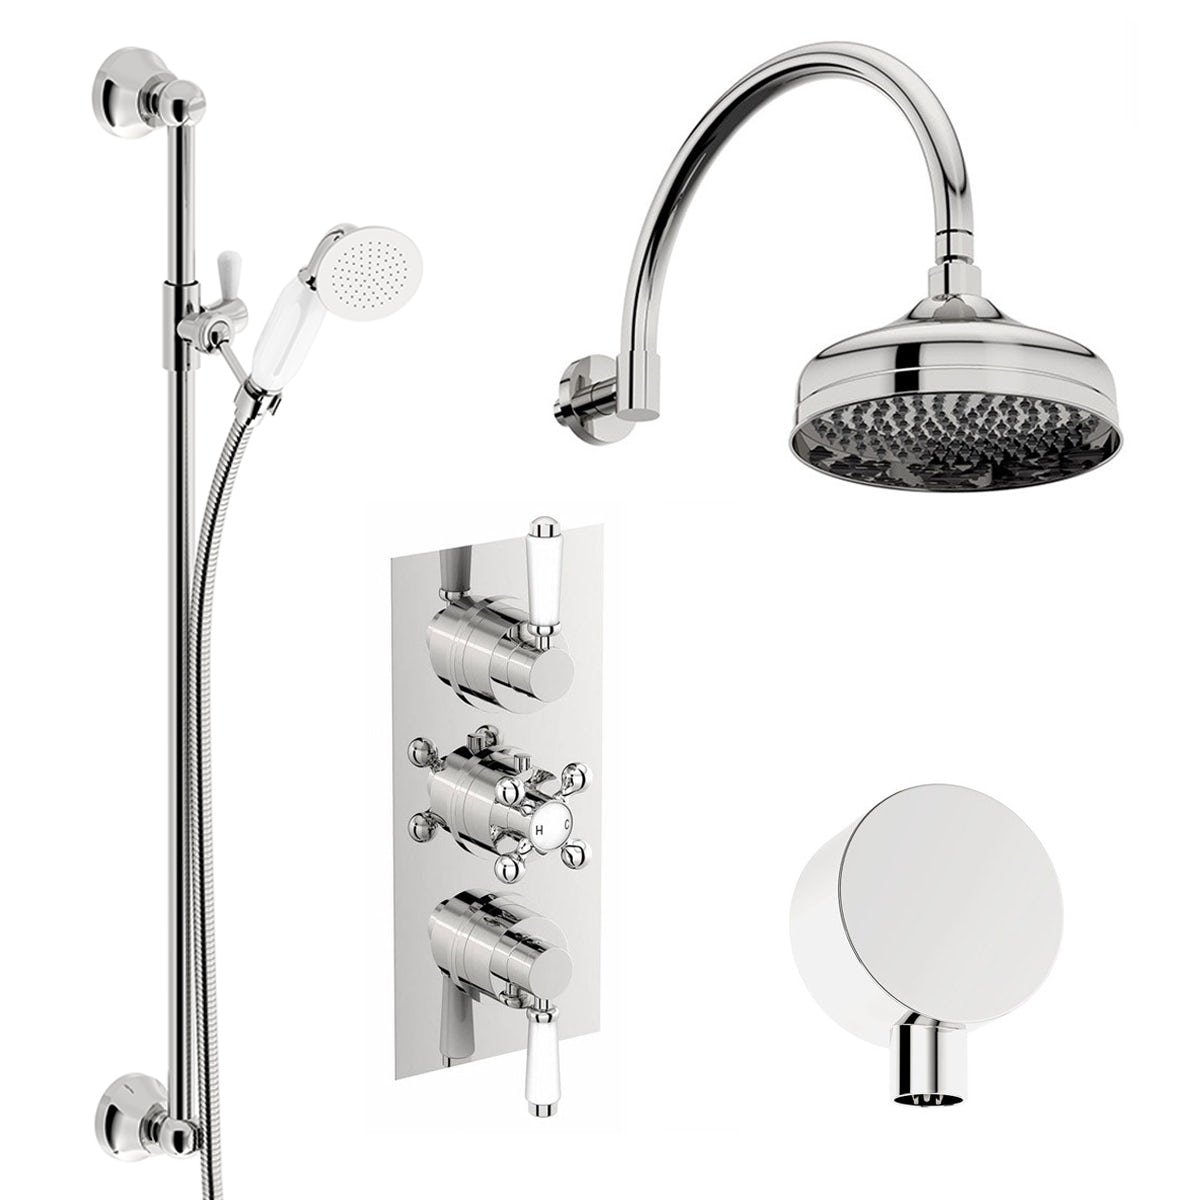 Shower Bathroom Sets: The Bath Co Triple Shower Valve Shower Set